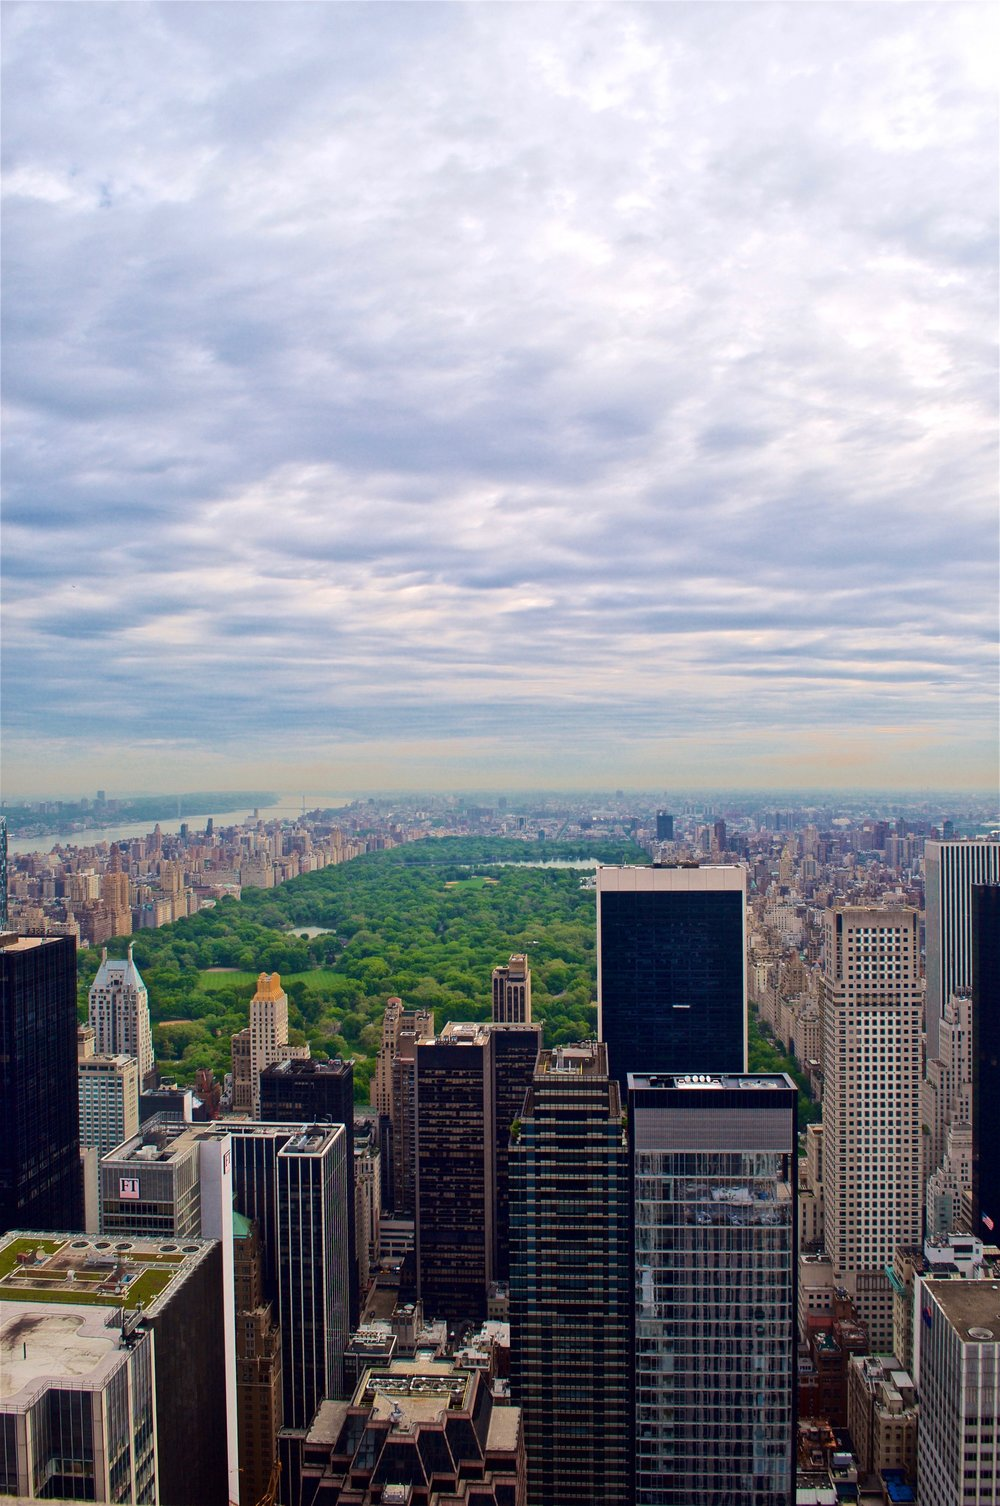 View of New York City from Rockefeller Center